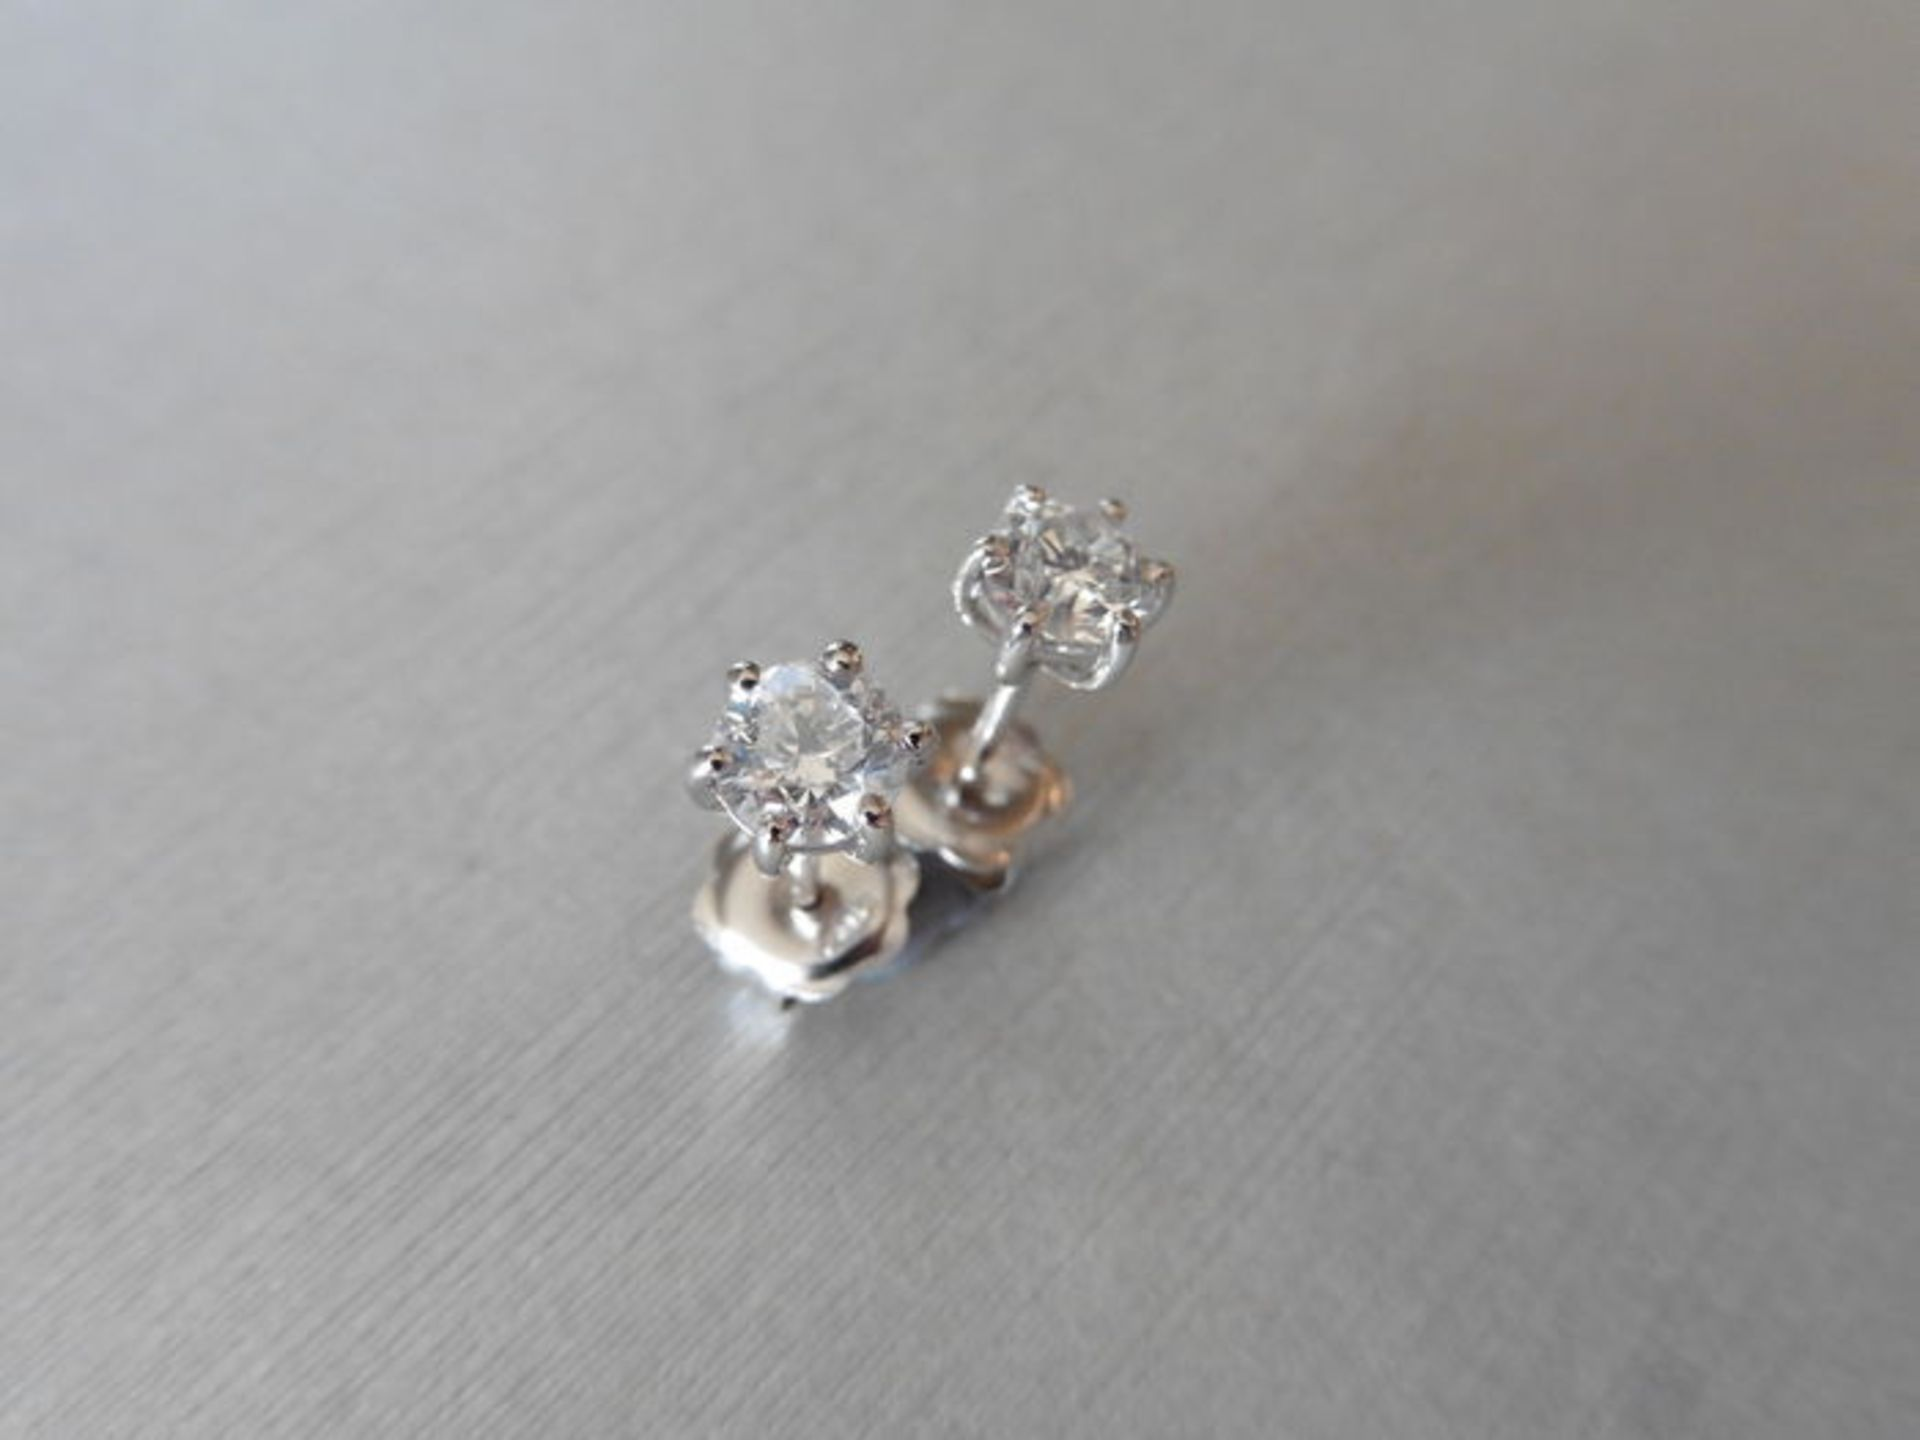 Lot 18 - 0.50ct Solitaire diamond stud earrings set with brilliant cut diamonds, SI2 clarity and I colour.